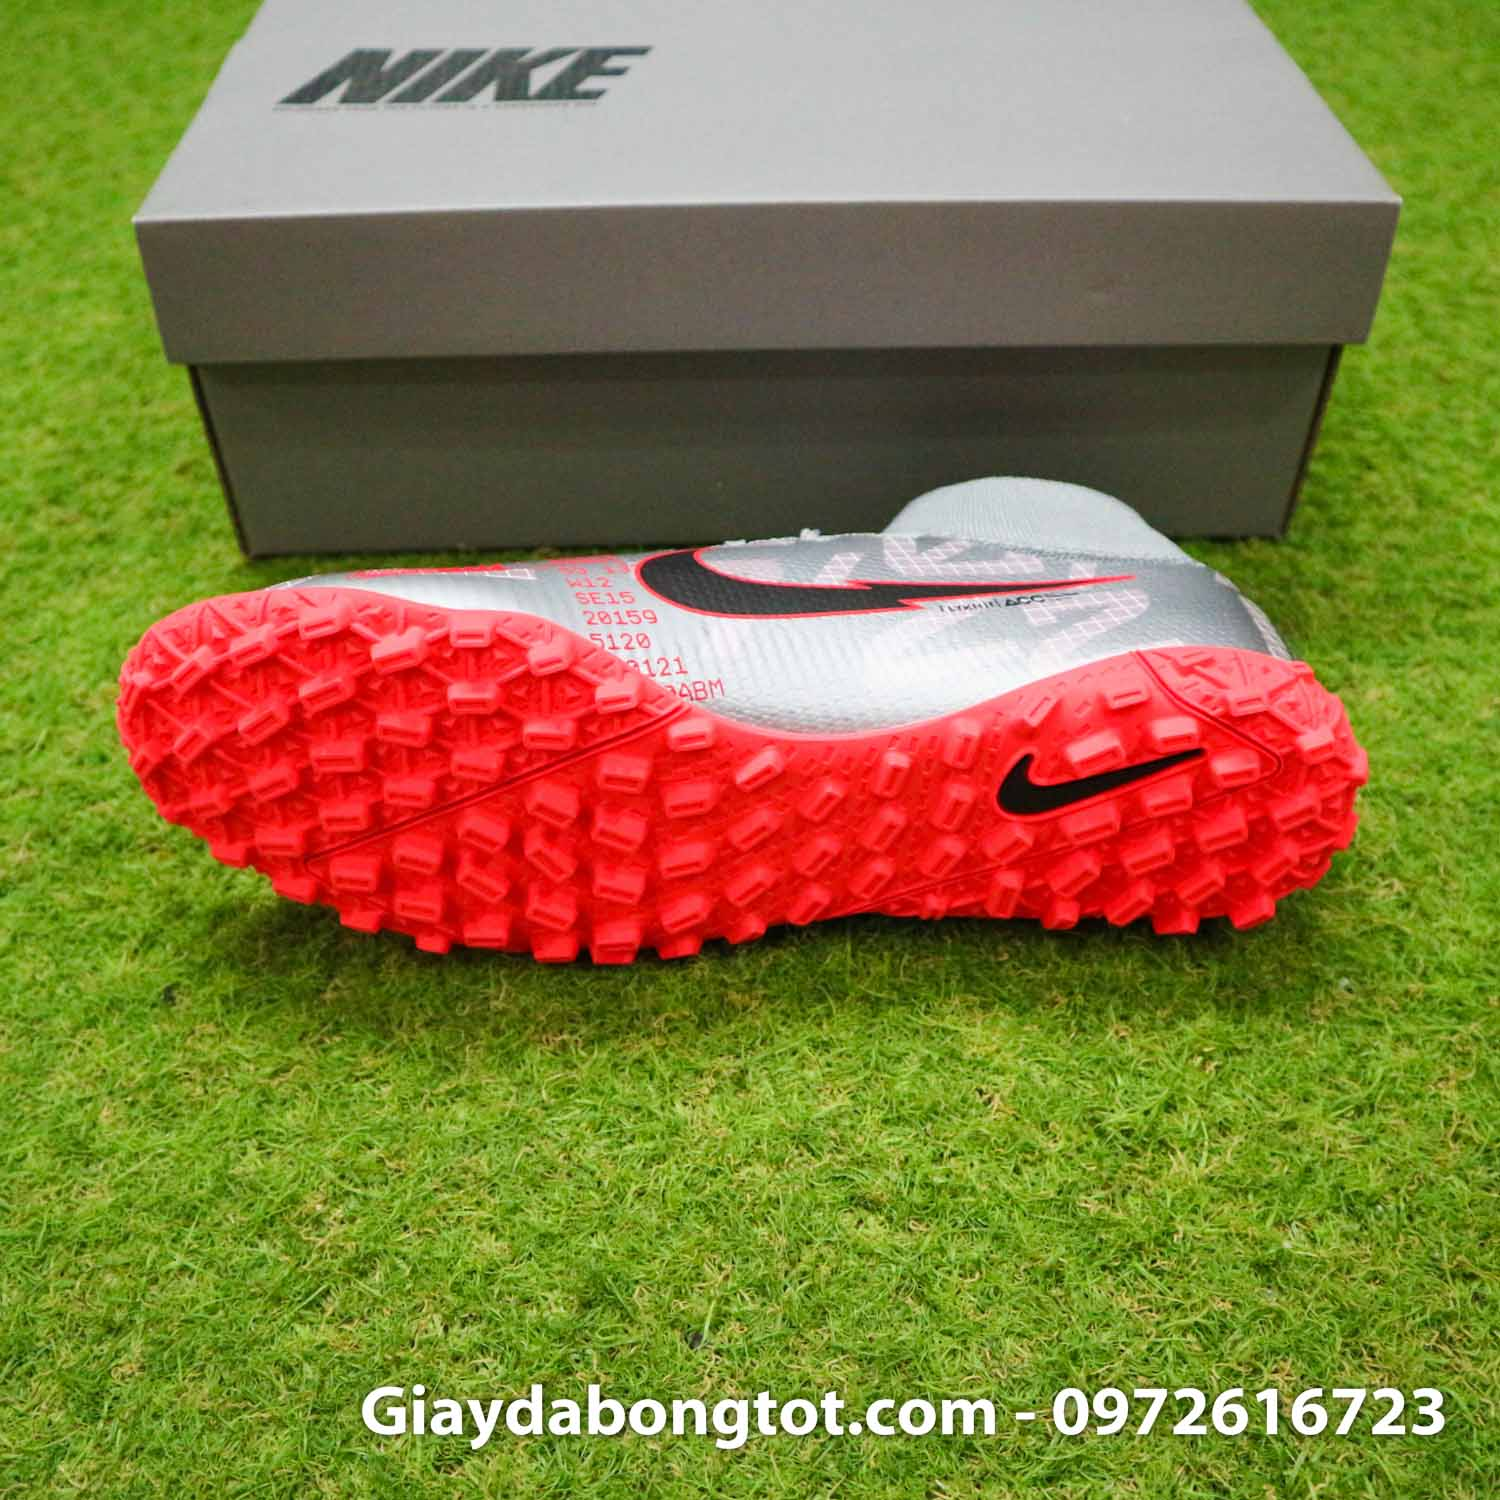 Giay da banh co cao nike mercurial superfly 7 elite tf xam vach do (4)